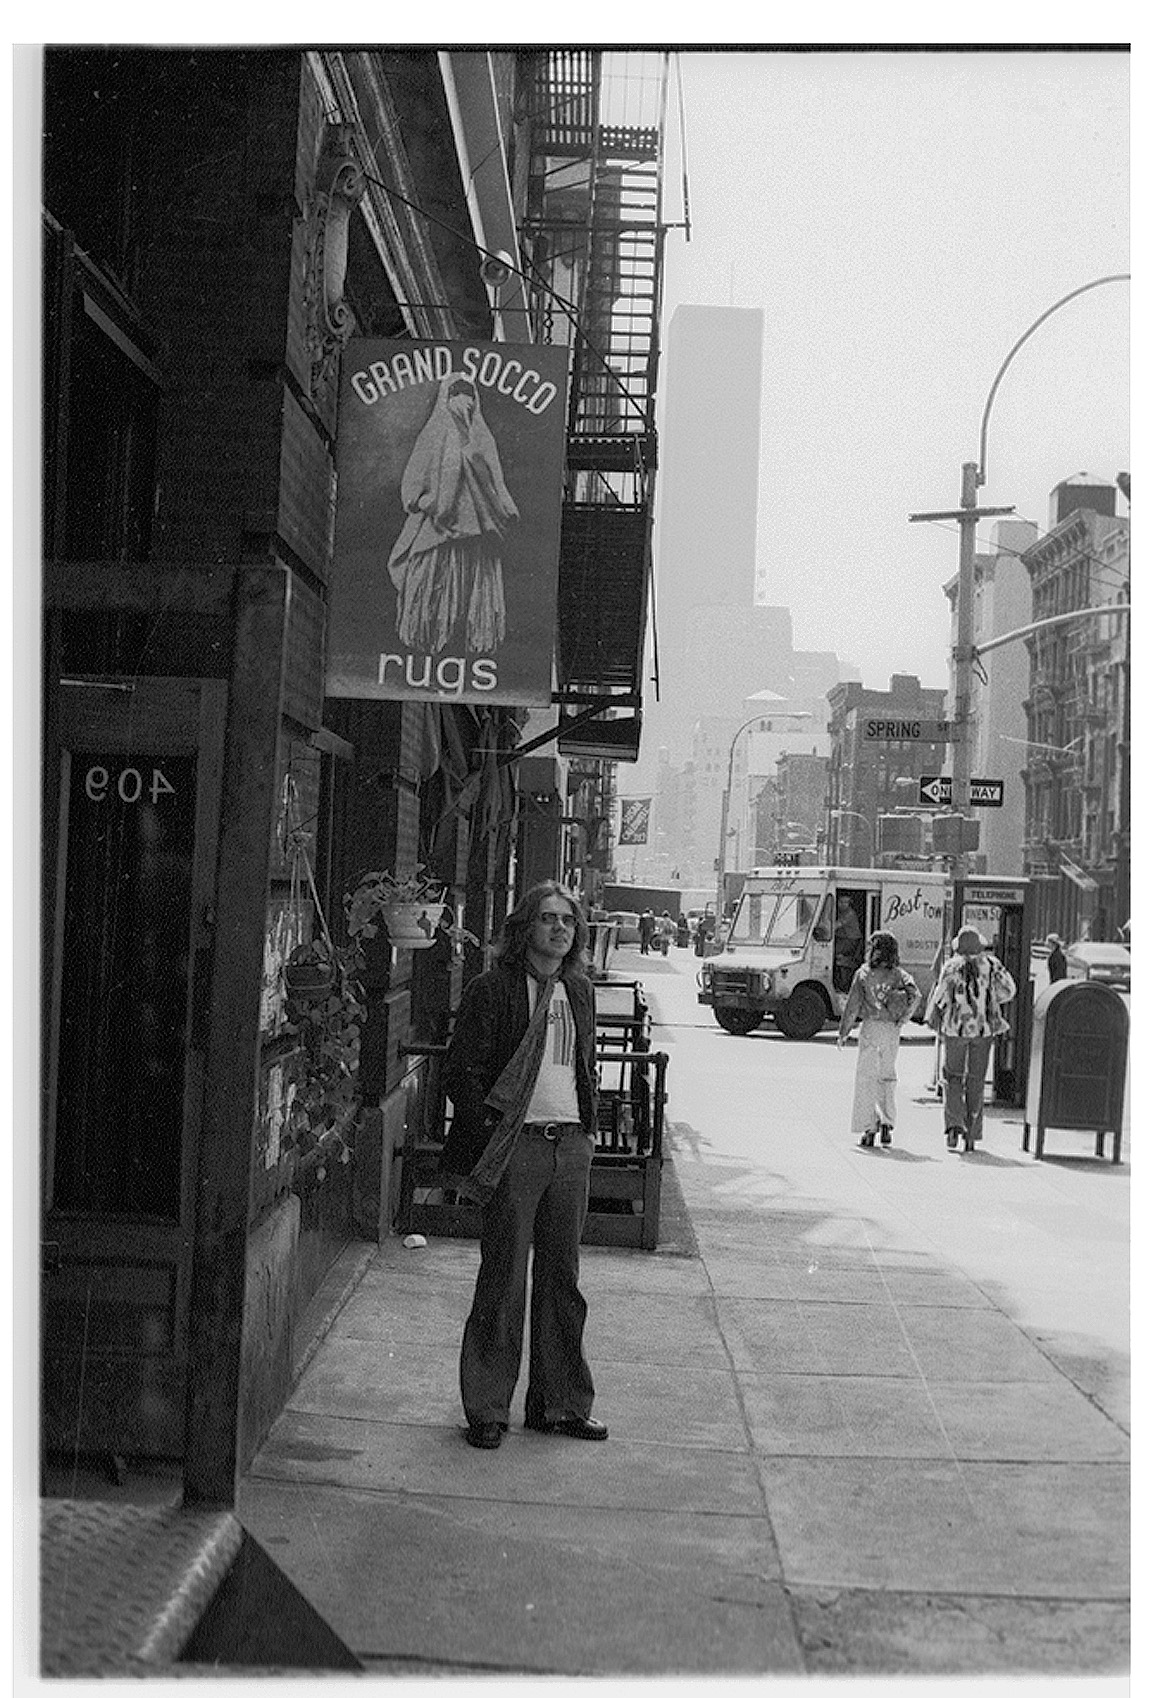 The author / photographer in 1973 on Thompson and Spring Streets in SoHo. One of the World Trade Towers in background,